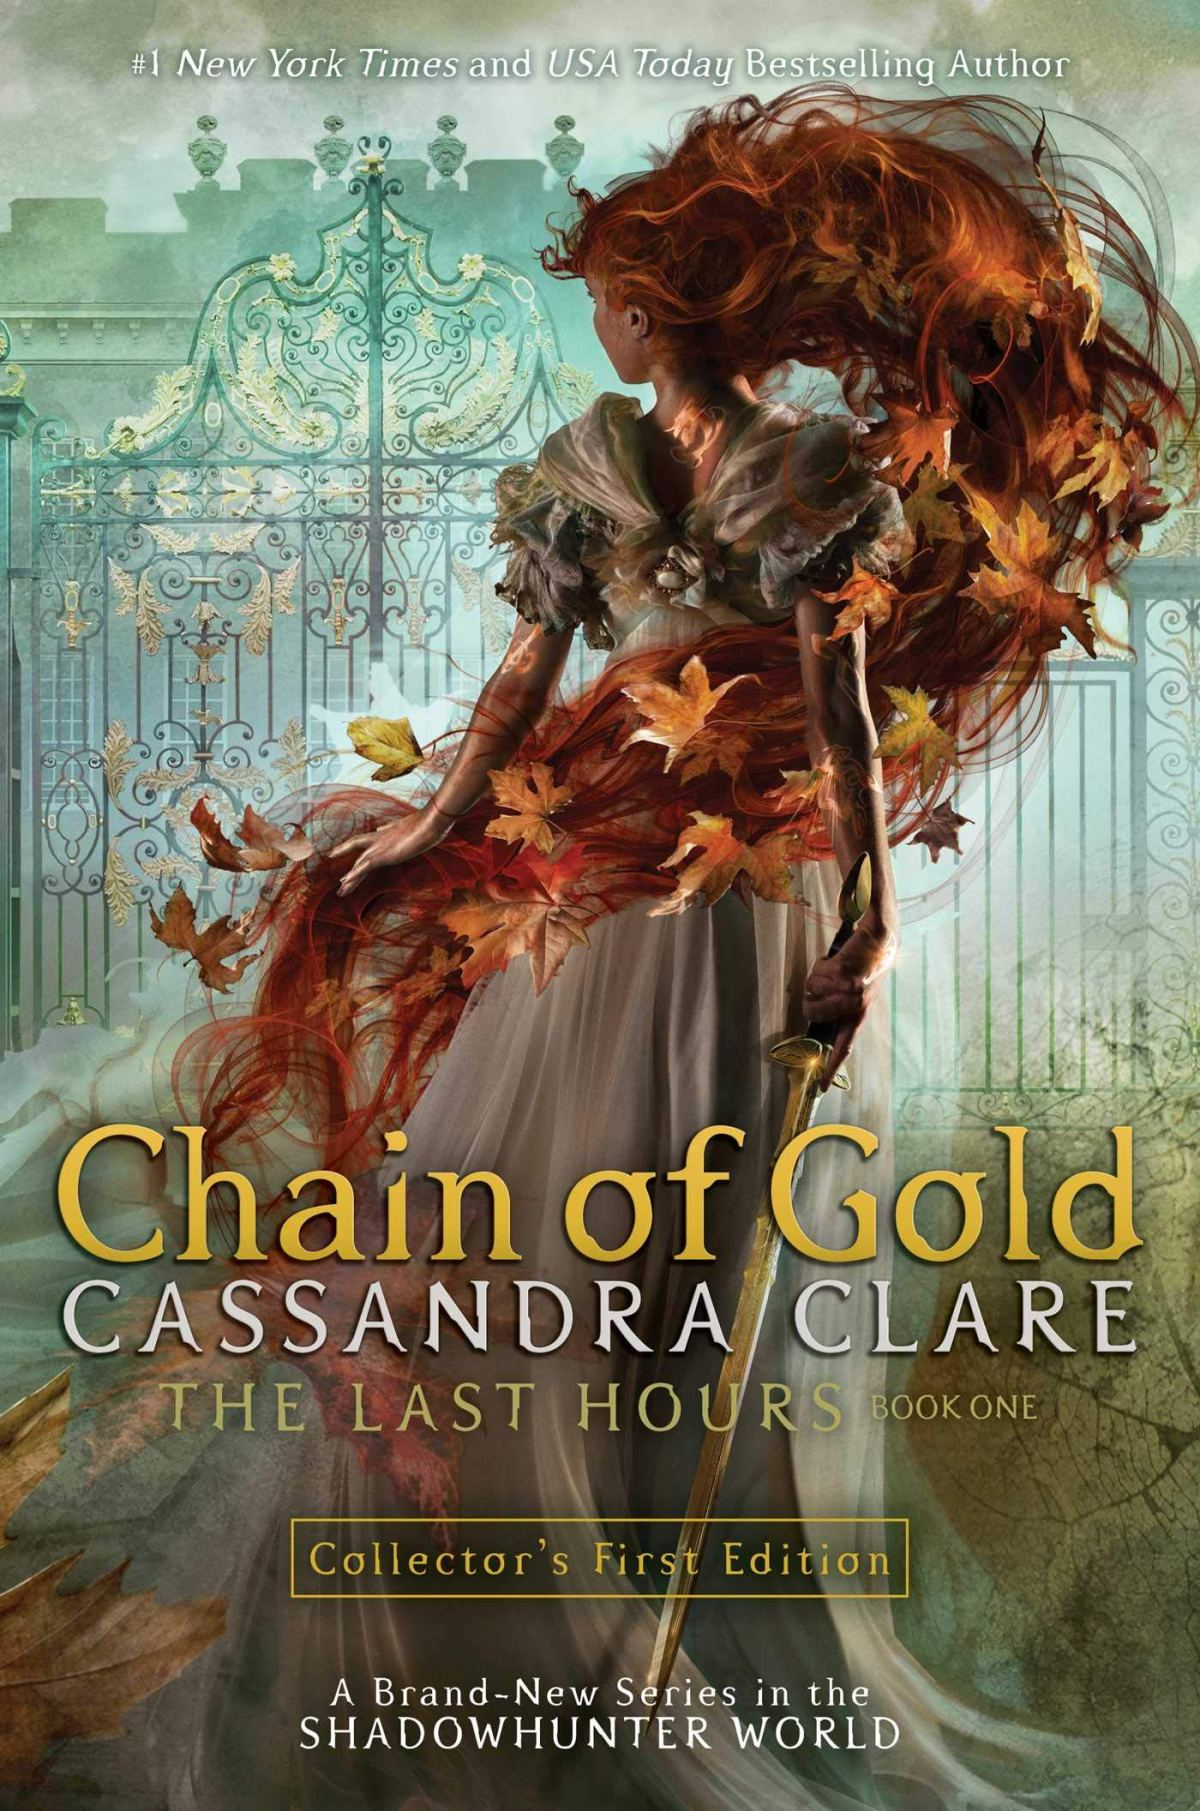 Chain of Gold (The Last Hours #1) by CassandraClare